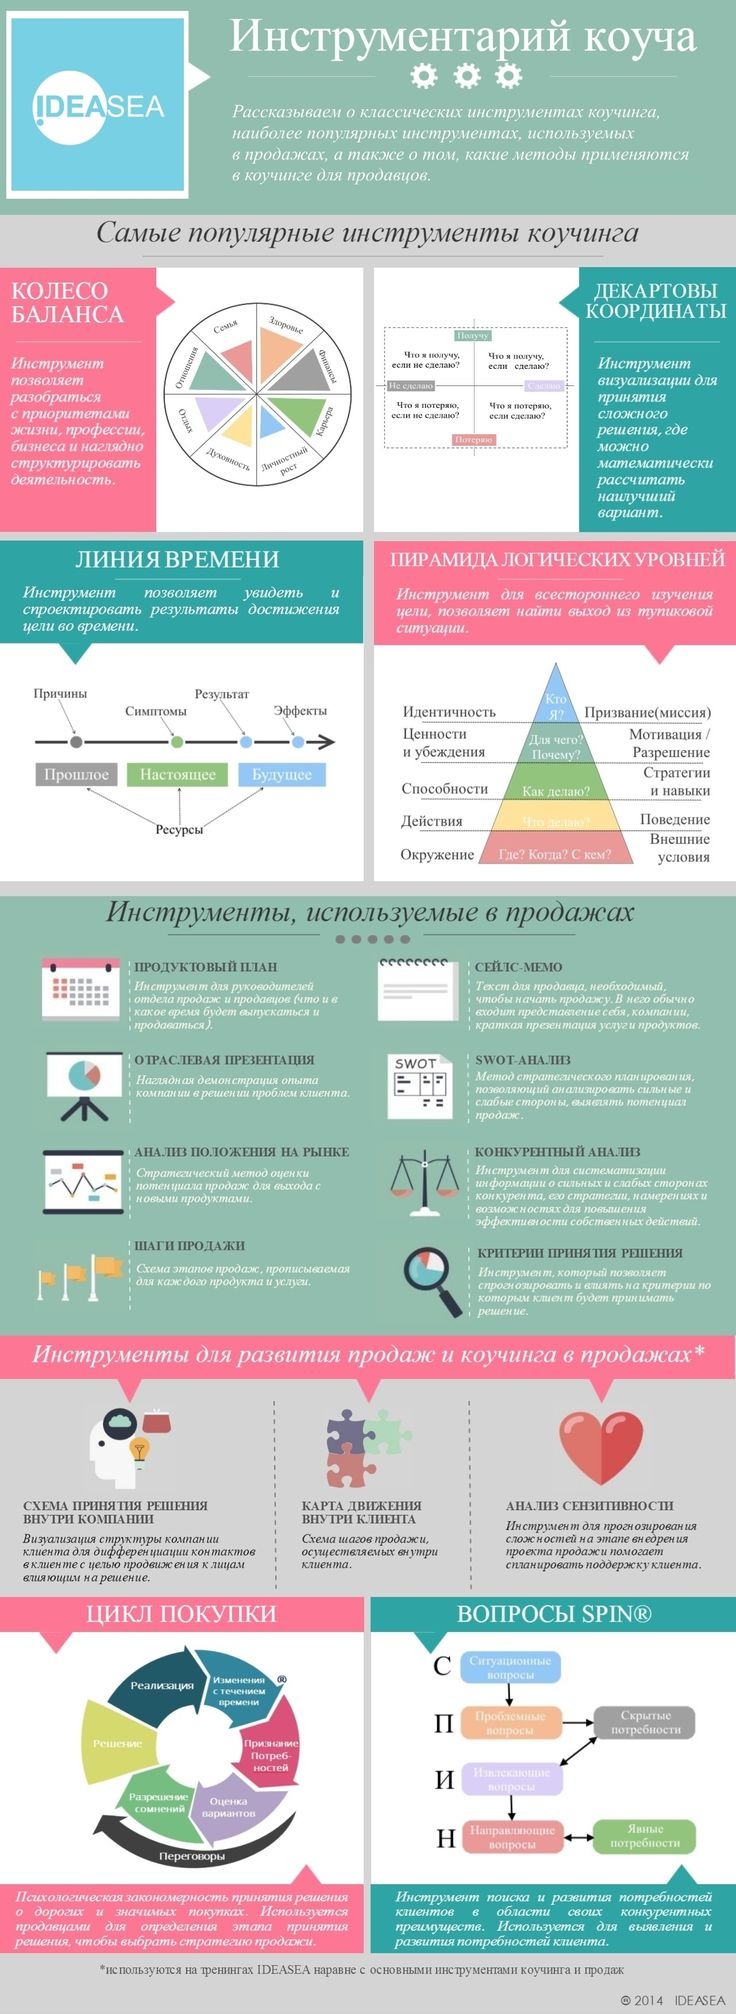 39 best всячина images on Pinterest | Psychology, Life hacking and ...